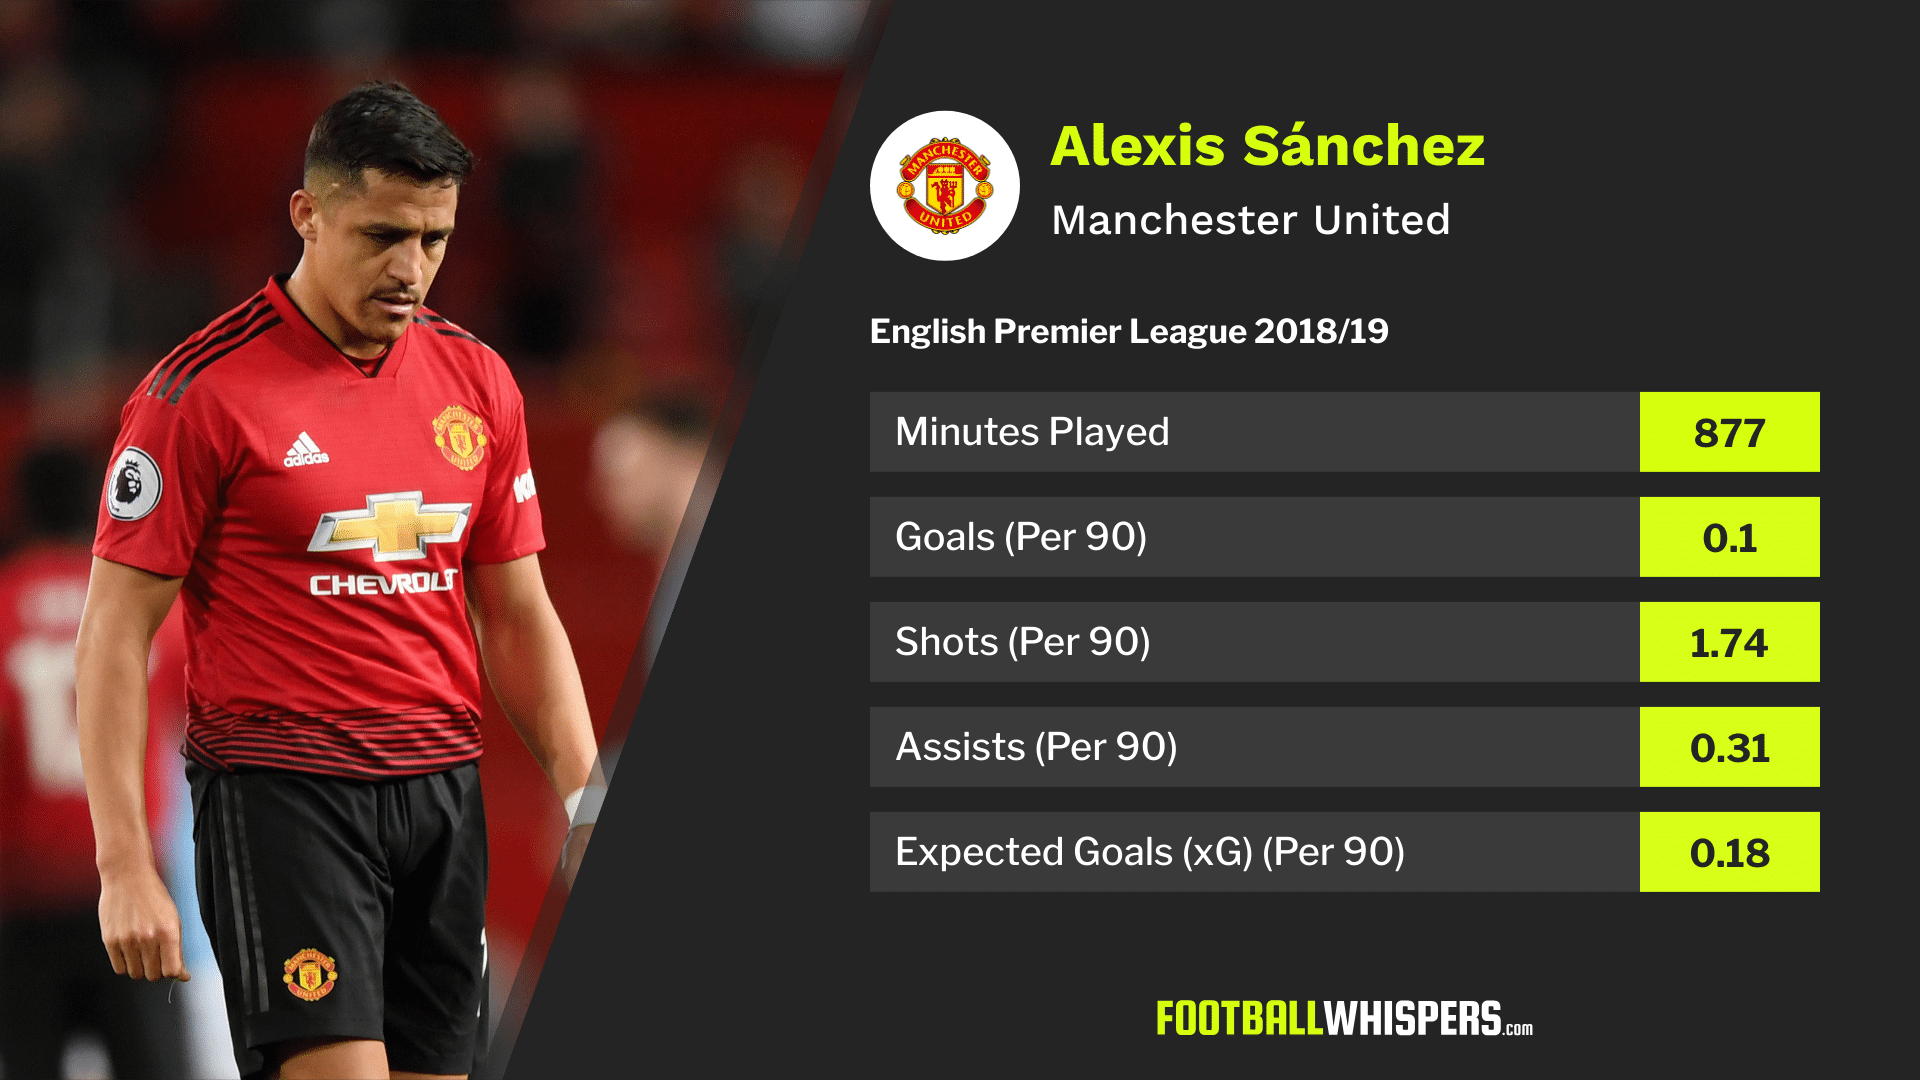 Alexis Sánchez's 2018/19 Premier League stats for Manchester United